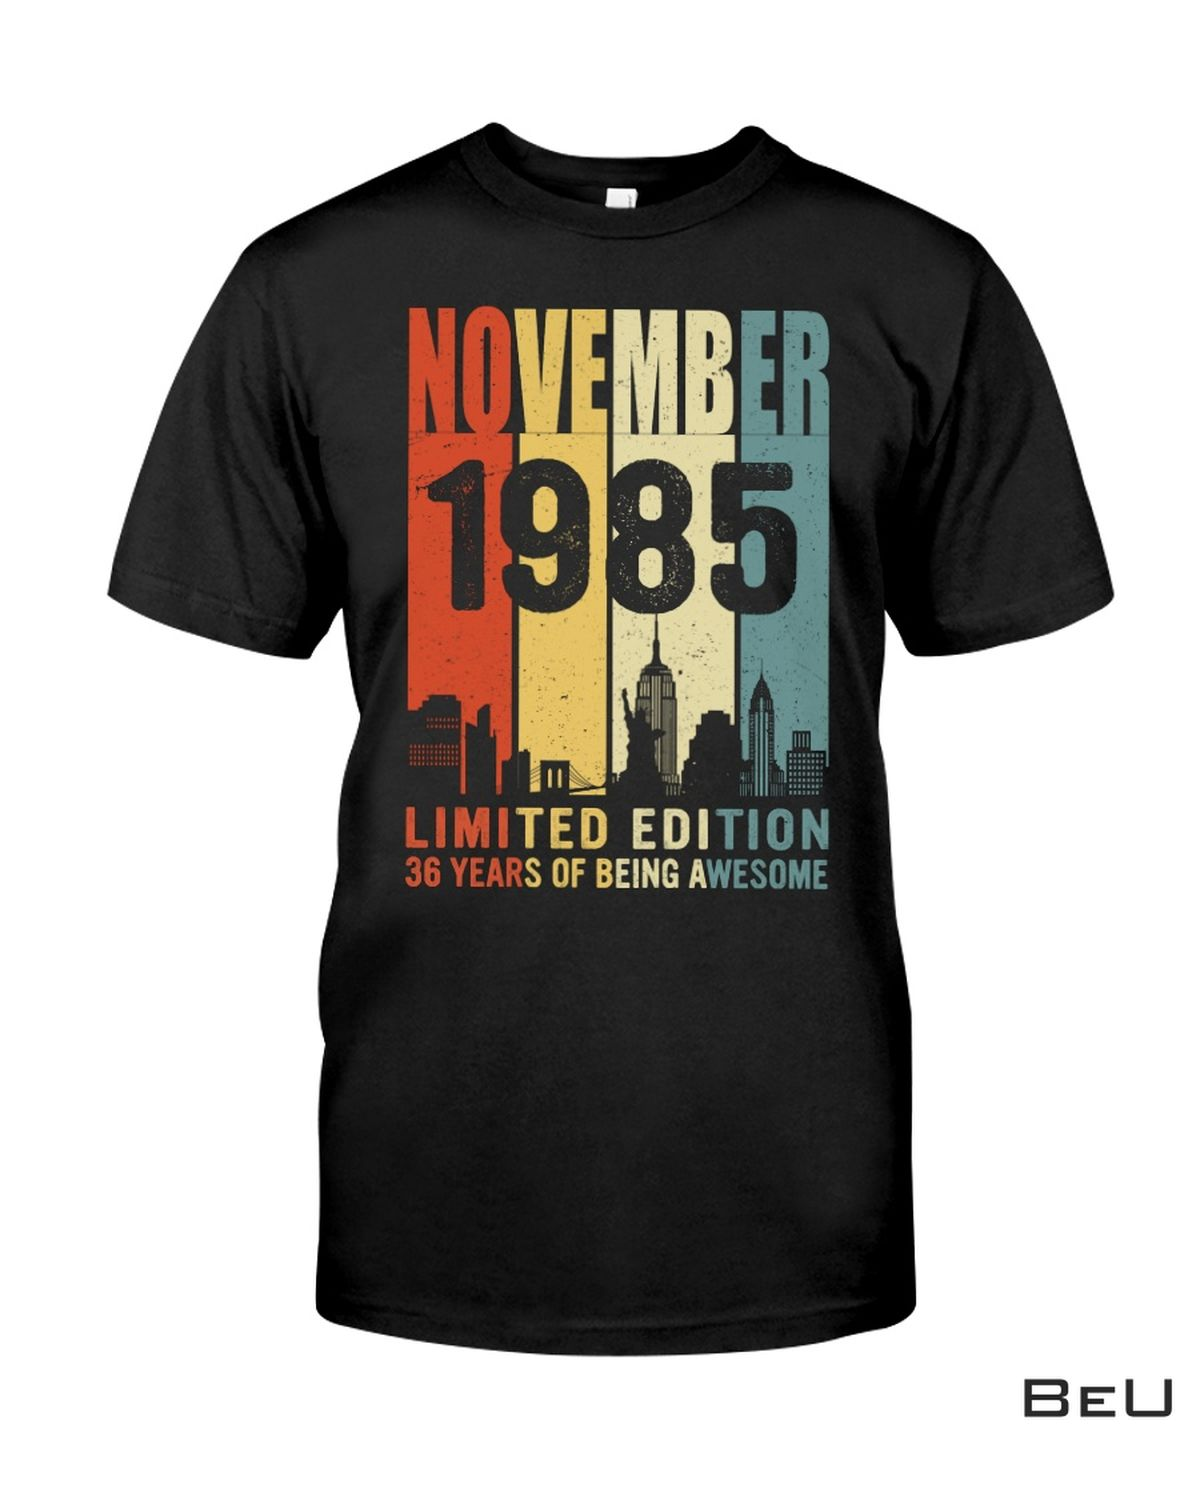 Esty November 1985 Limited Edition 36 Years Of Being Awesome Shirt, hoodie, tank top